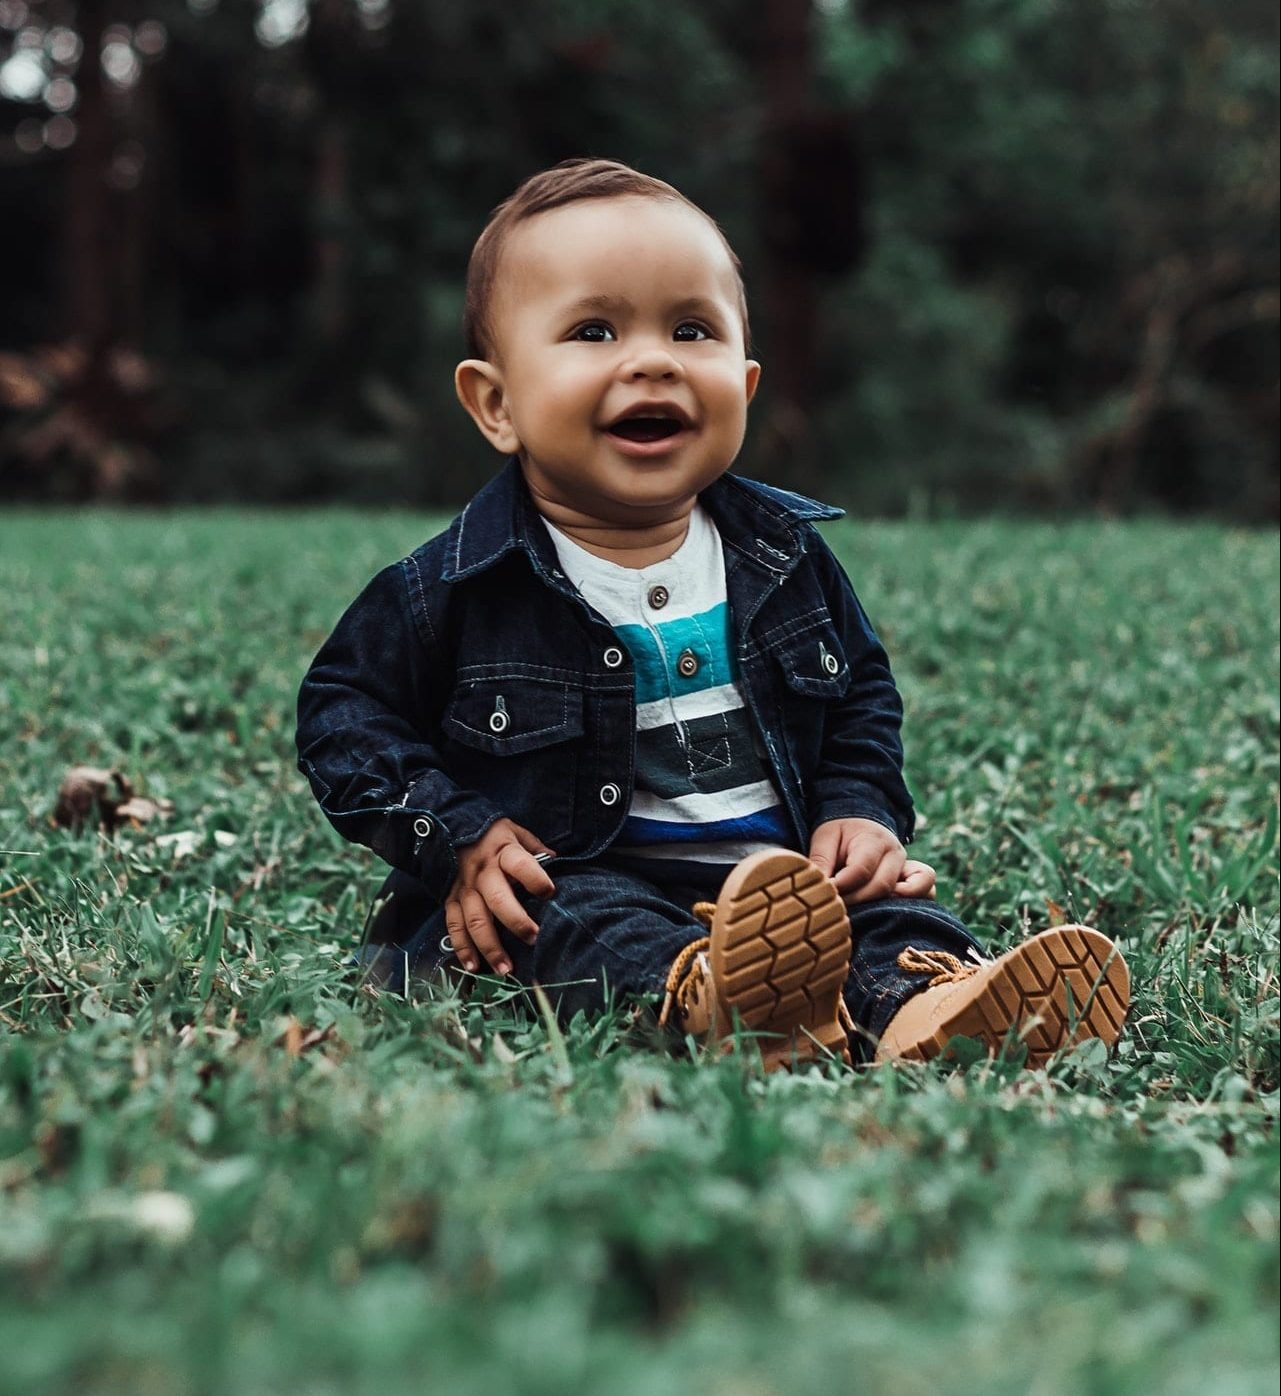 photo-of-smiling-baby-boy-in-denim-outfit-sitting-on-grass-2760338-e1593718189259.jpg